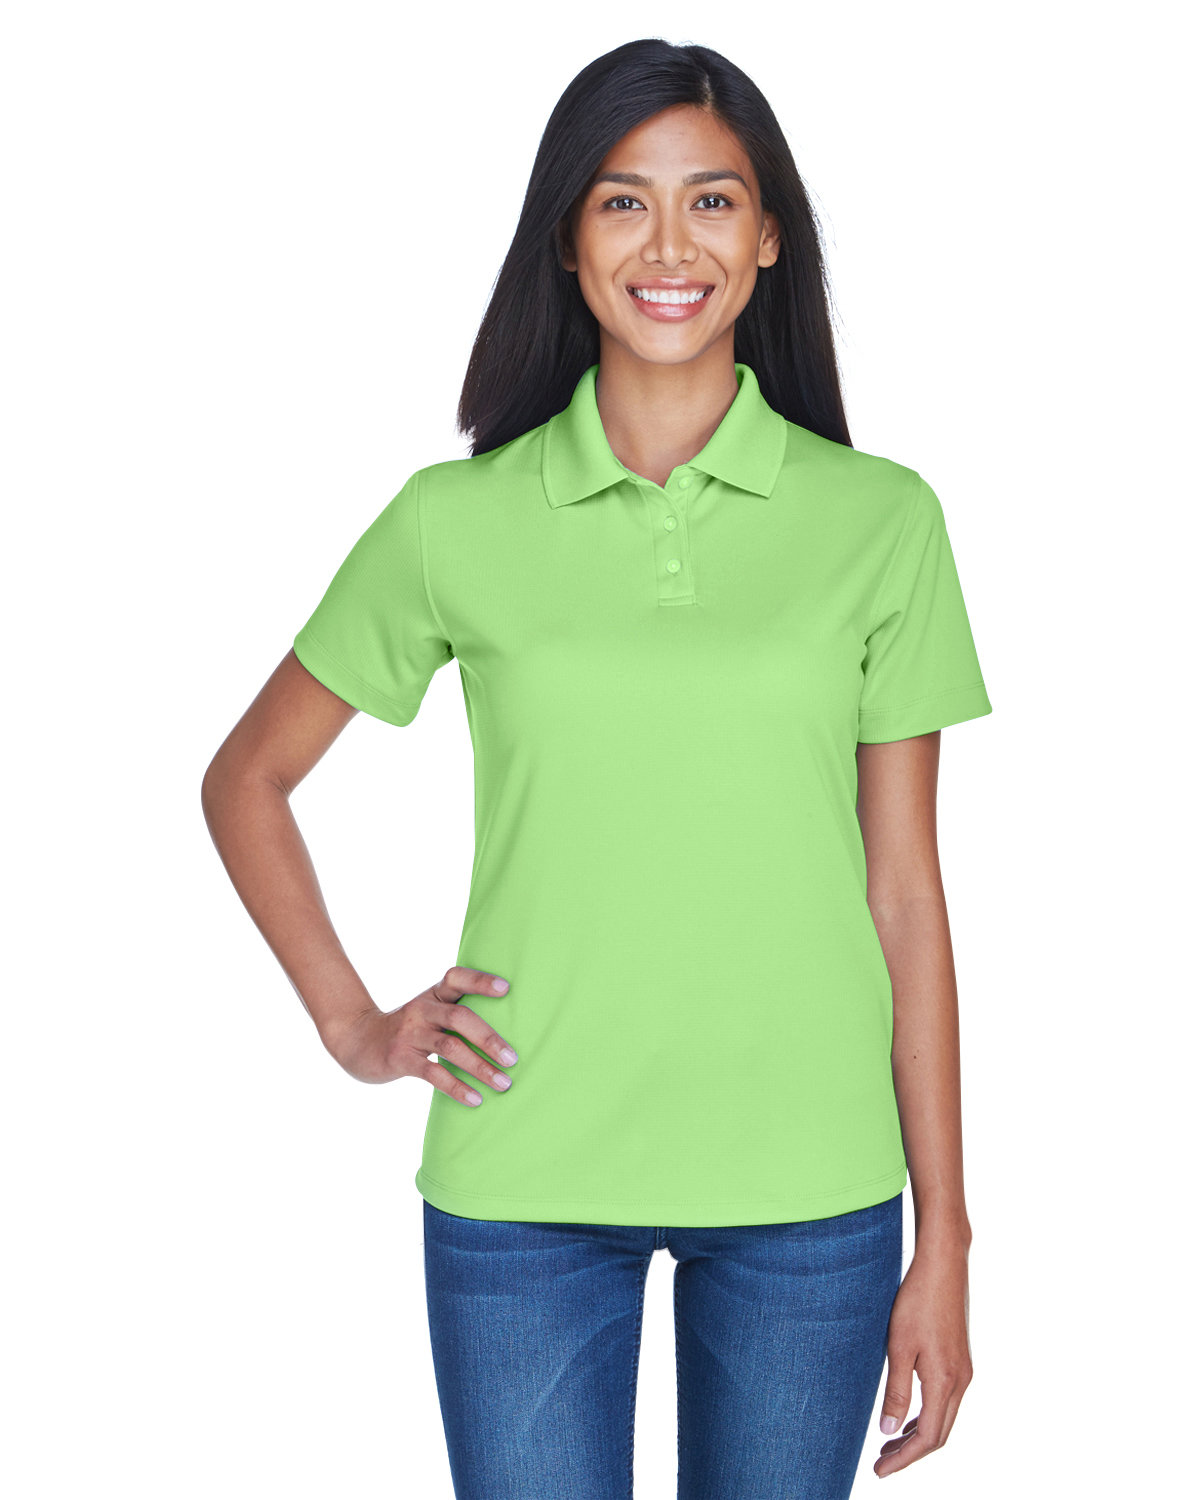 UltraClub Ladies' Cool & Dry Stain-Release Performance Polo LIGHT GREEN